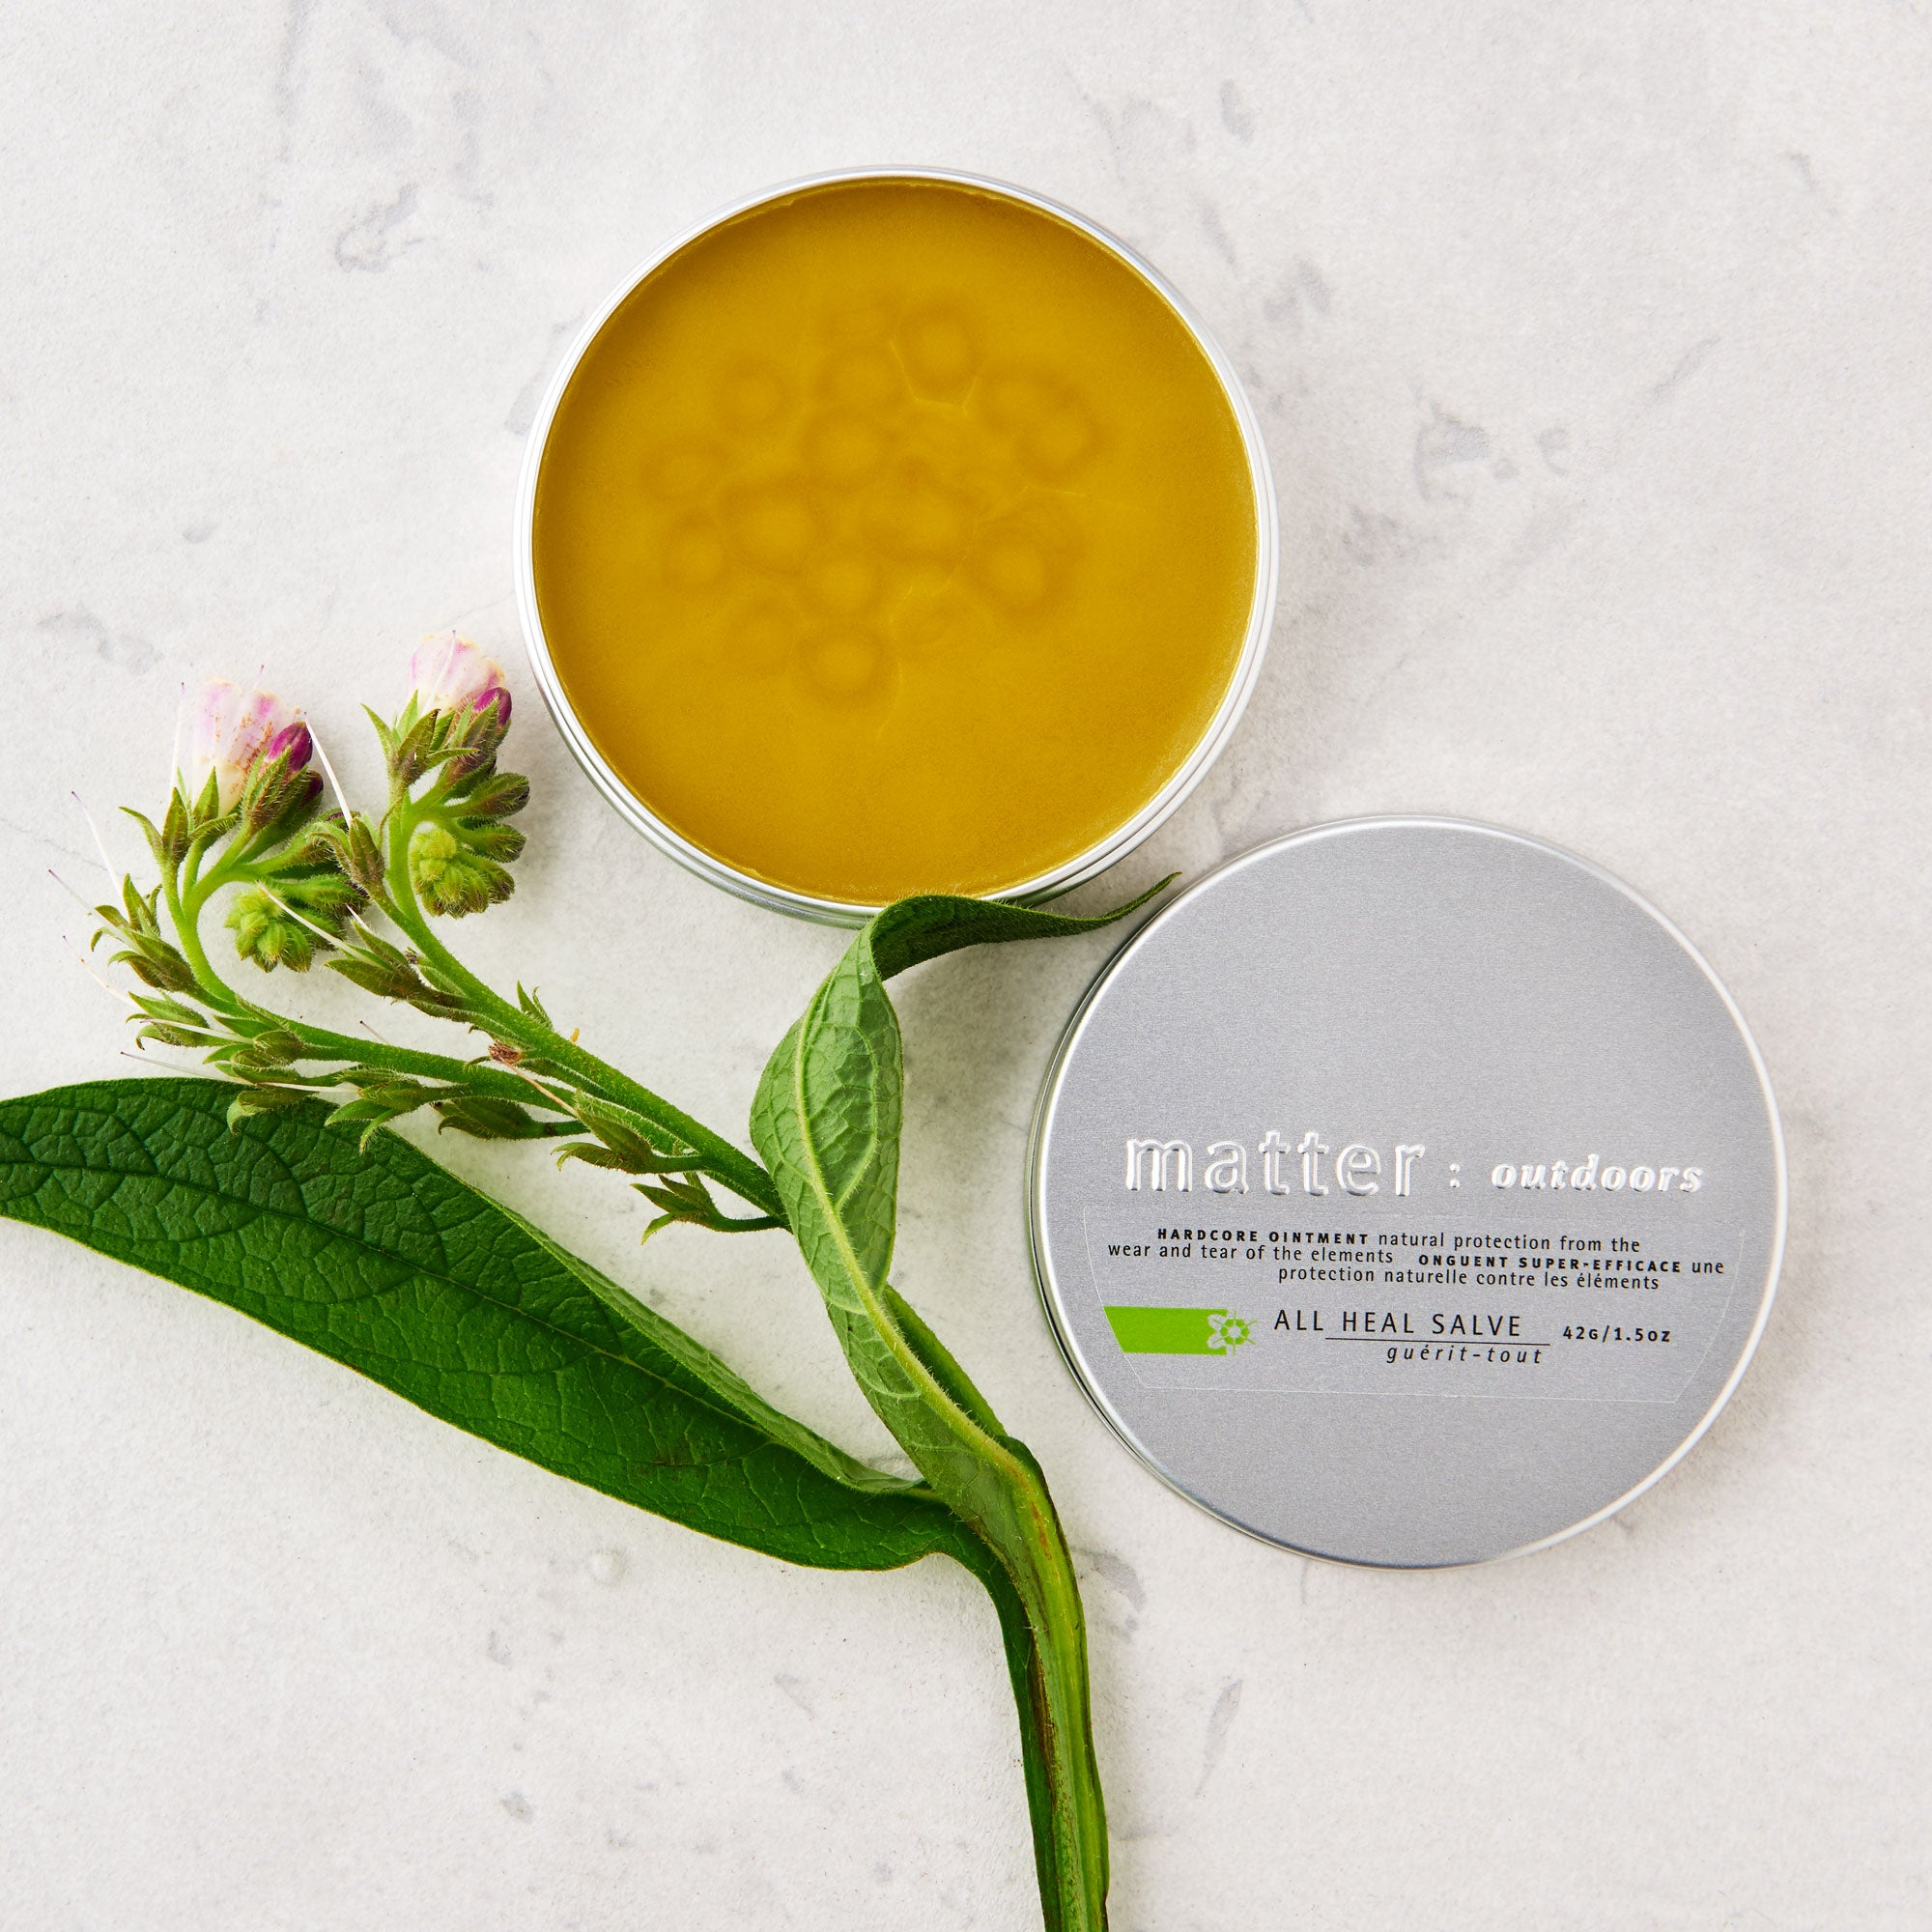 All Heal Salve by Matter: Outdoors